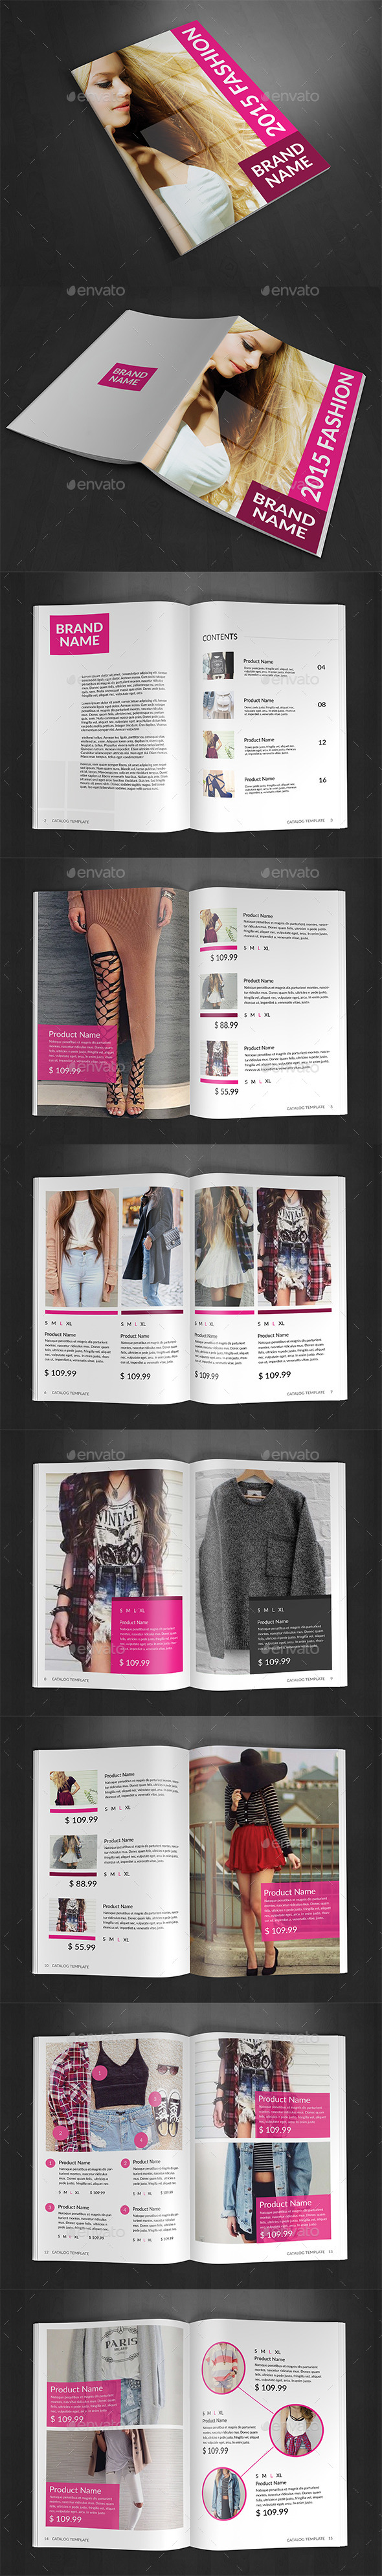 GraphicRiver Product Fashion Catalog 11431191